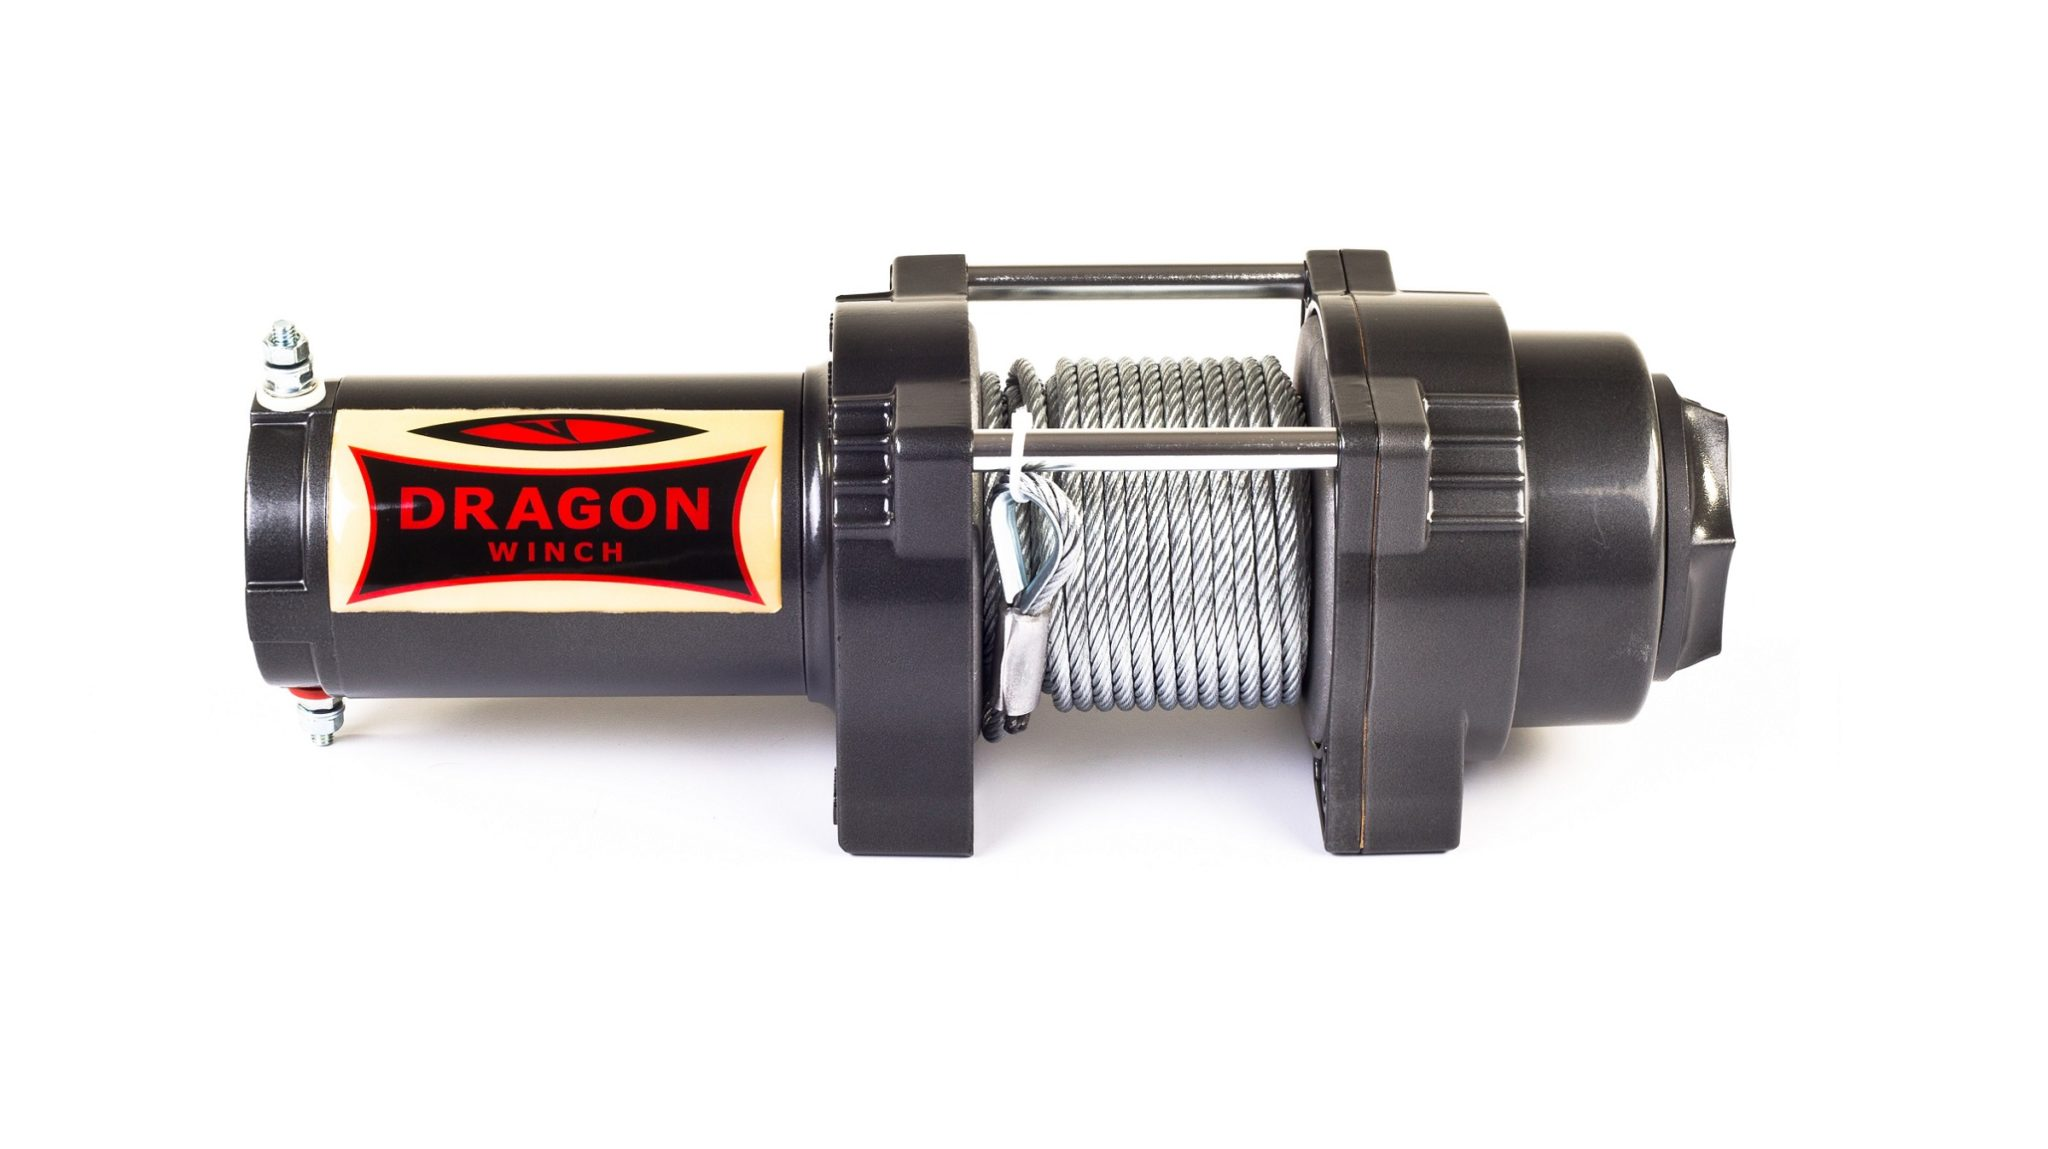 Dragon Winch Seilwinde DWH 3500 HD - 1.588 kg